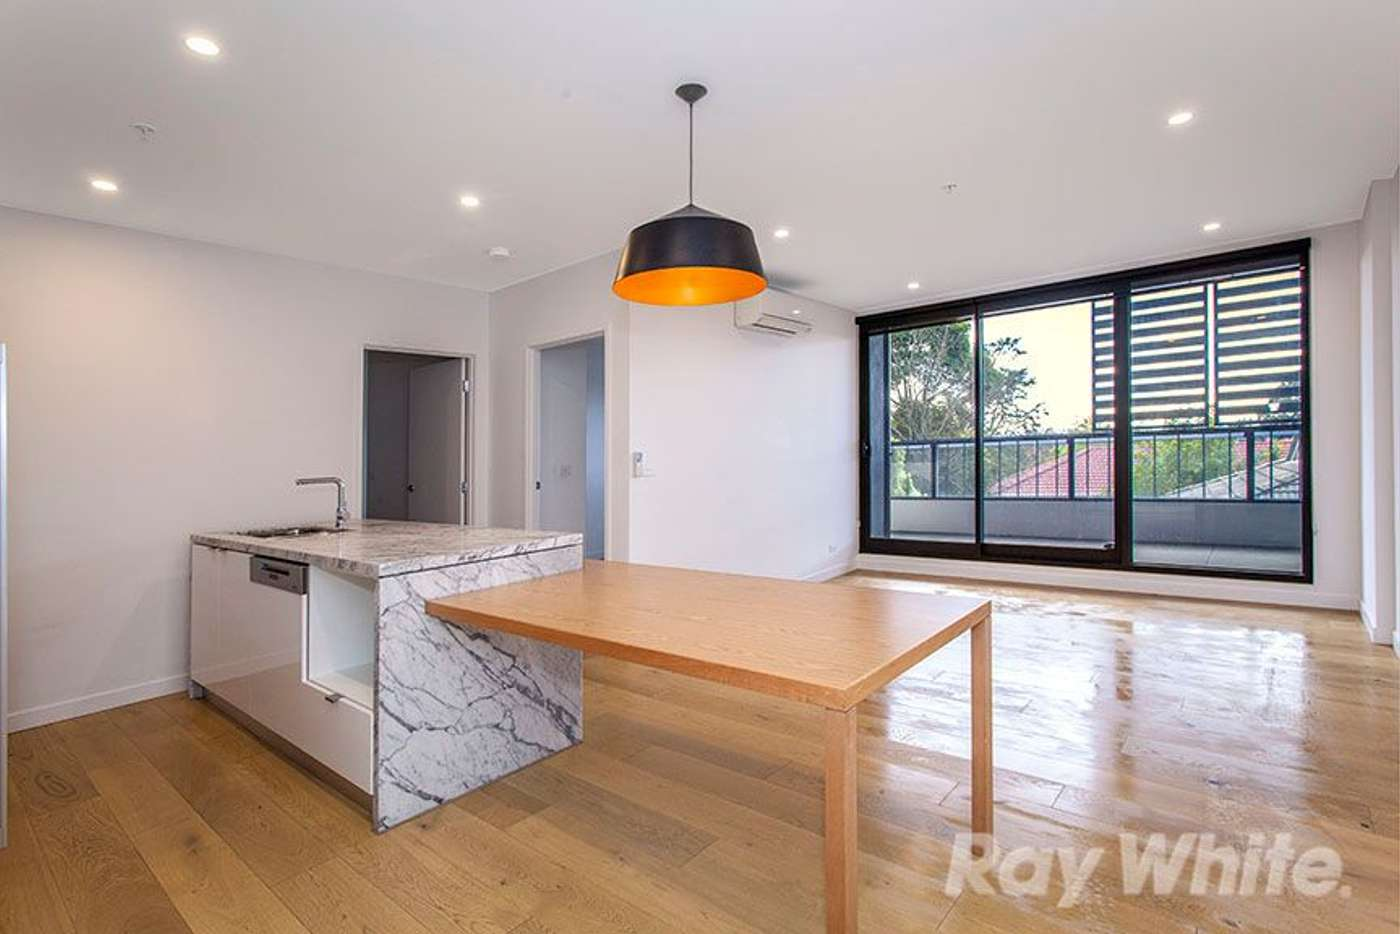 Main view of Homely apartment listing, 205/5 Sovereign Point Court, Doncaster VIC 3108